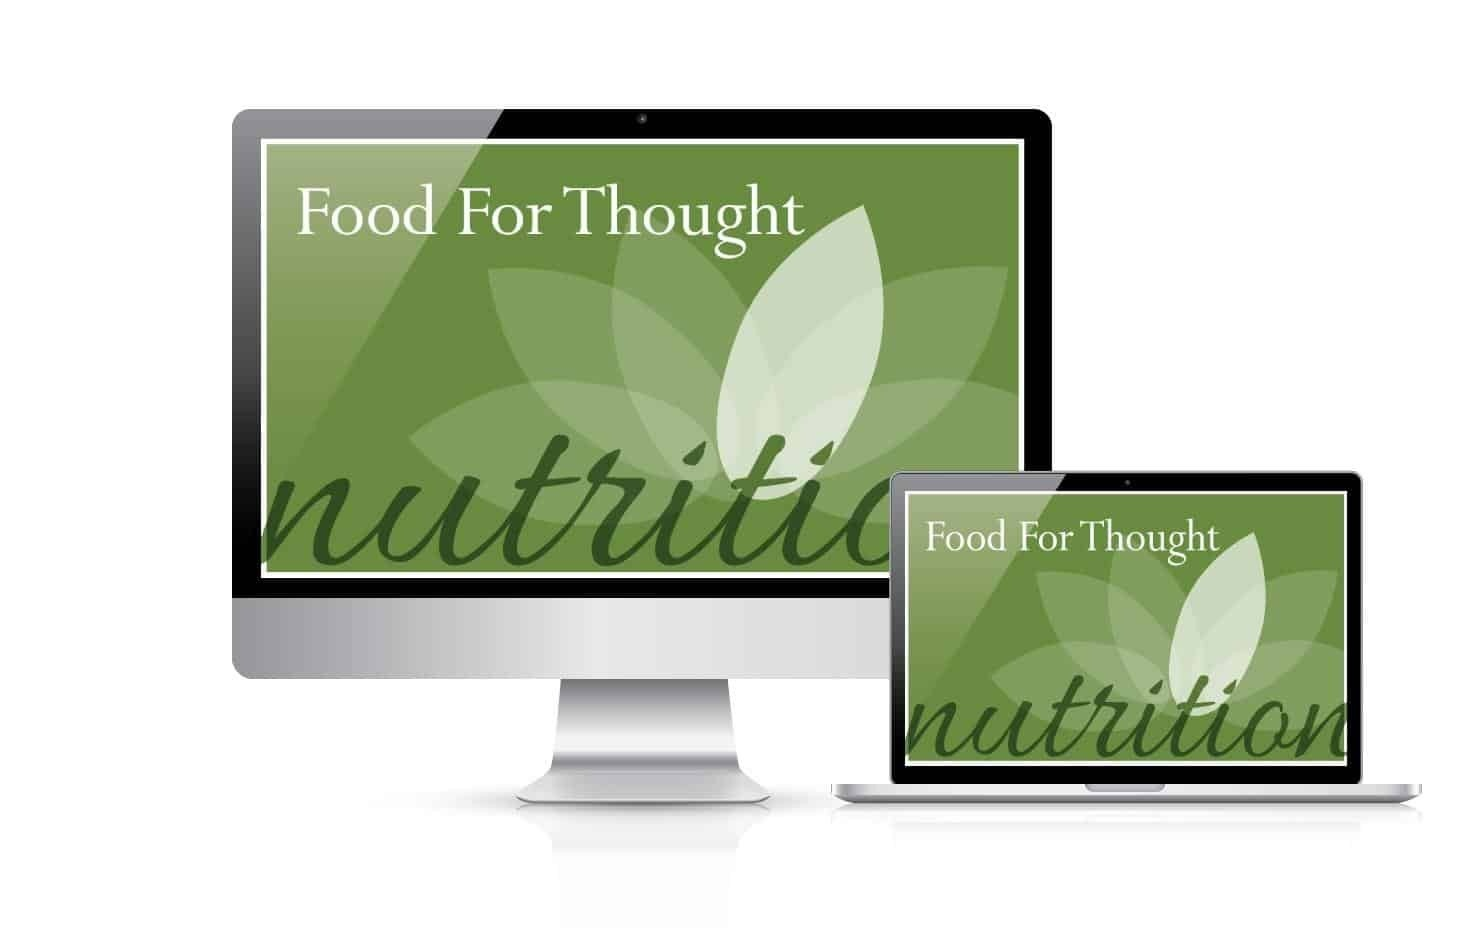 Balance of B'ing Food for Thought